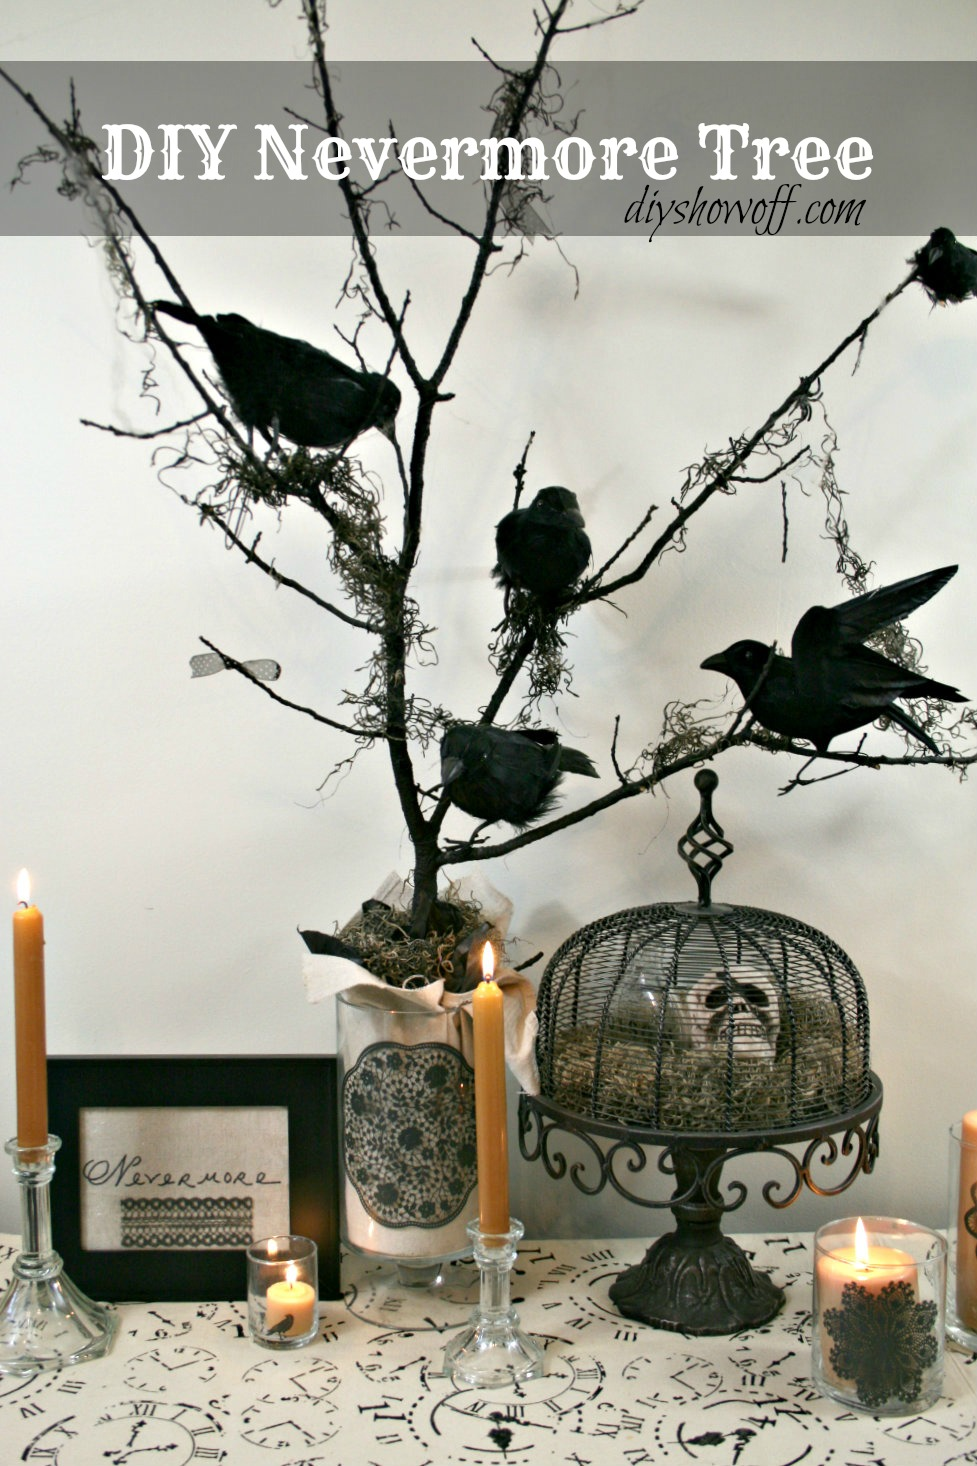 Diy halloween nevermore tree decordiy show off diy decorating diy halloween nevermore tree solutioingenieria Image collections